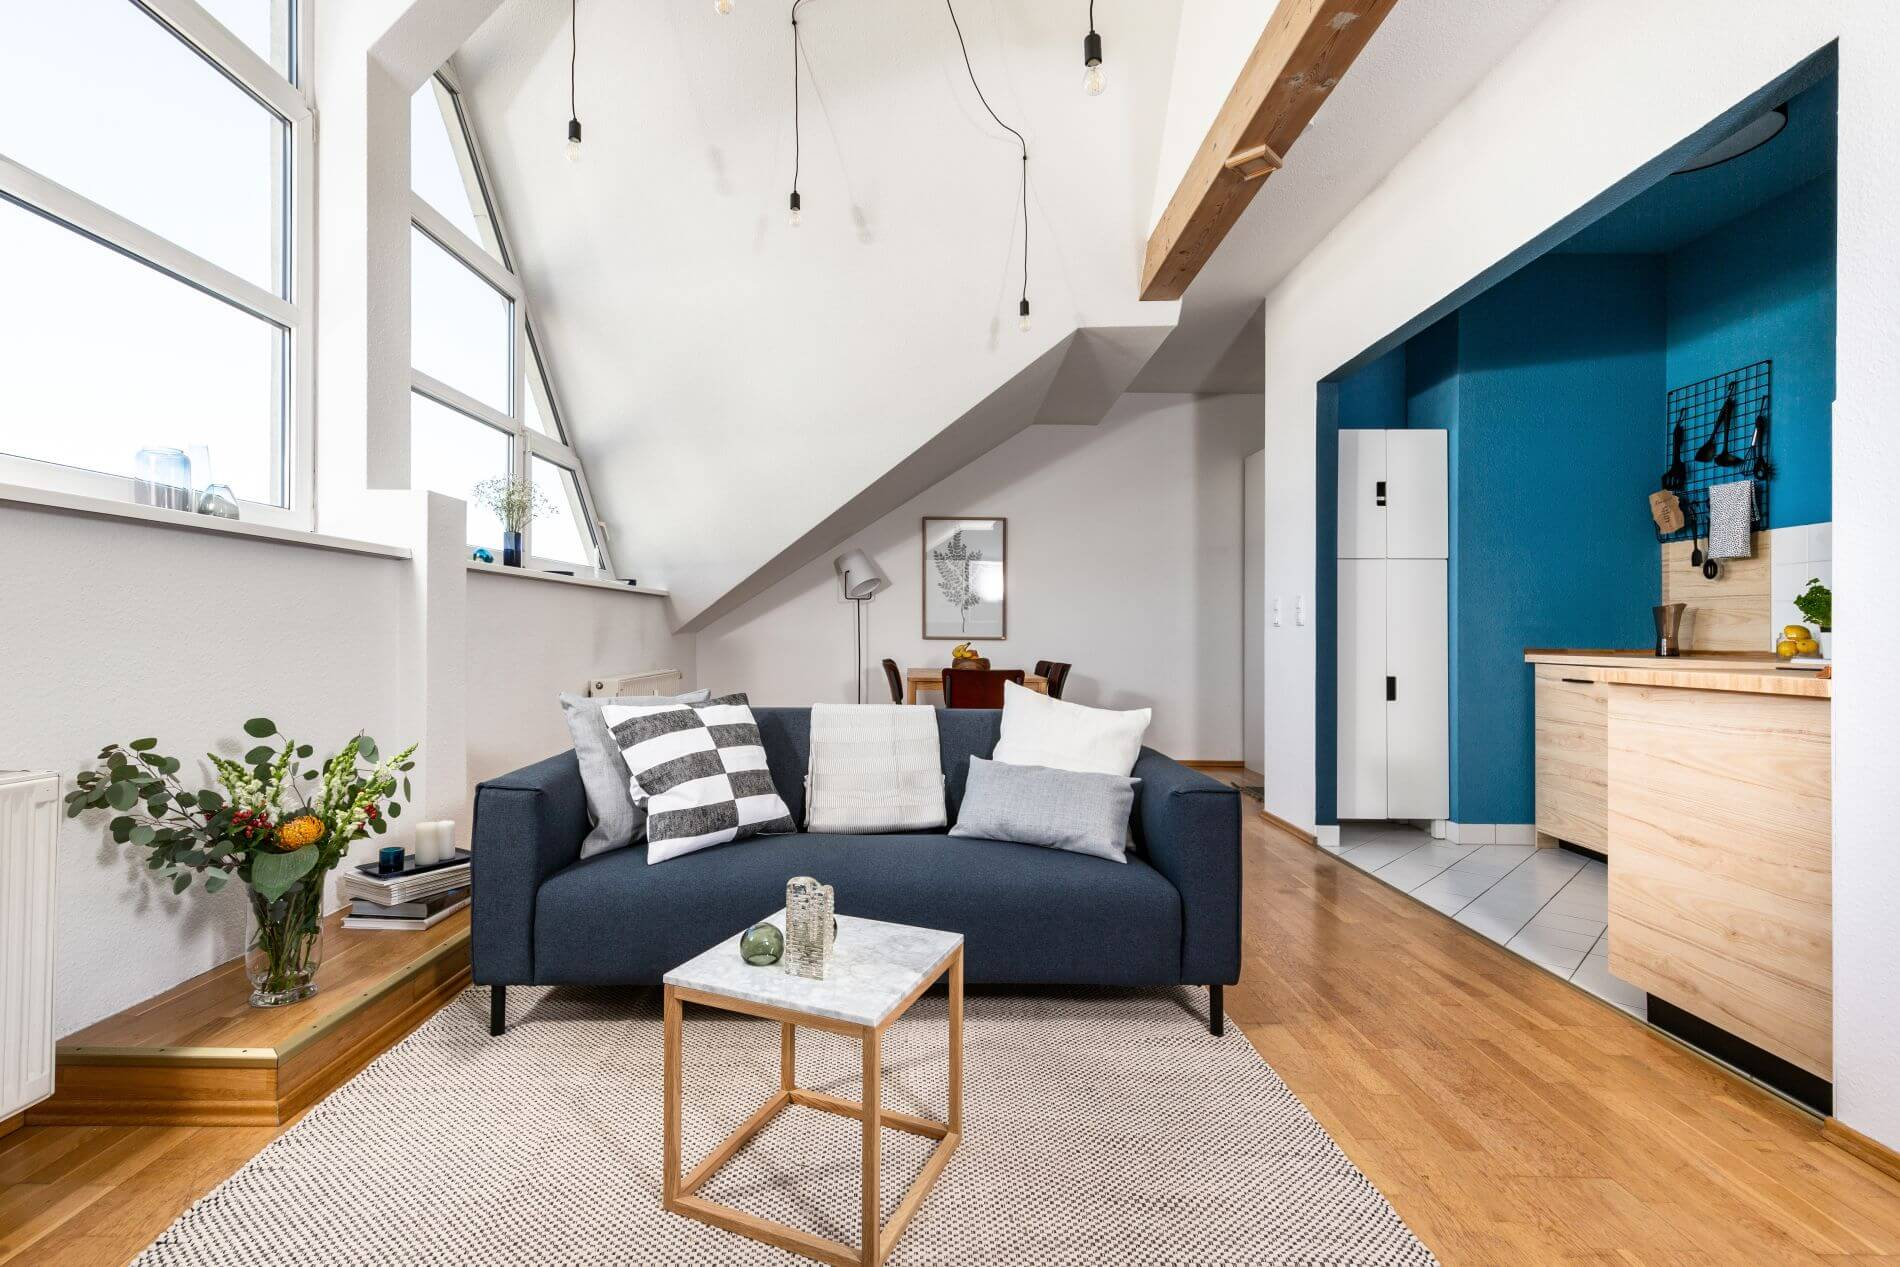 Serviced penthouse accommodation with instant book option